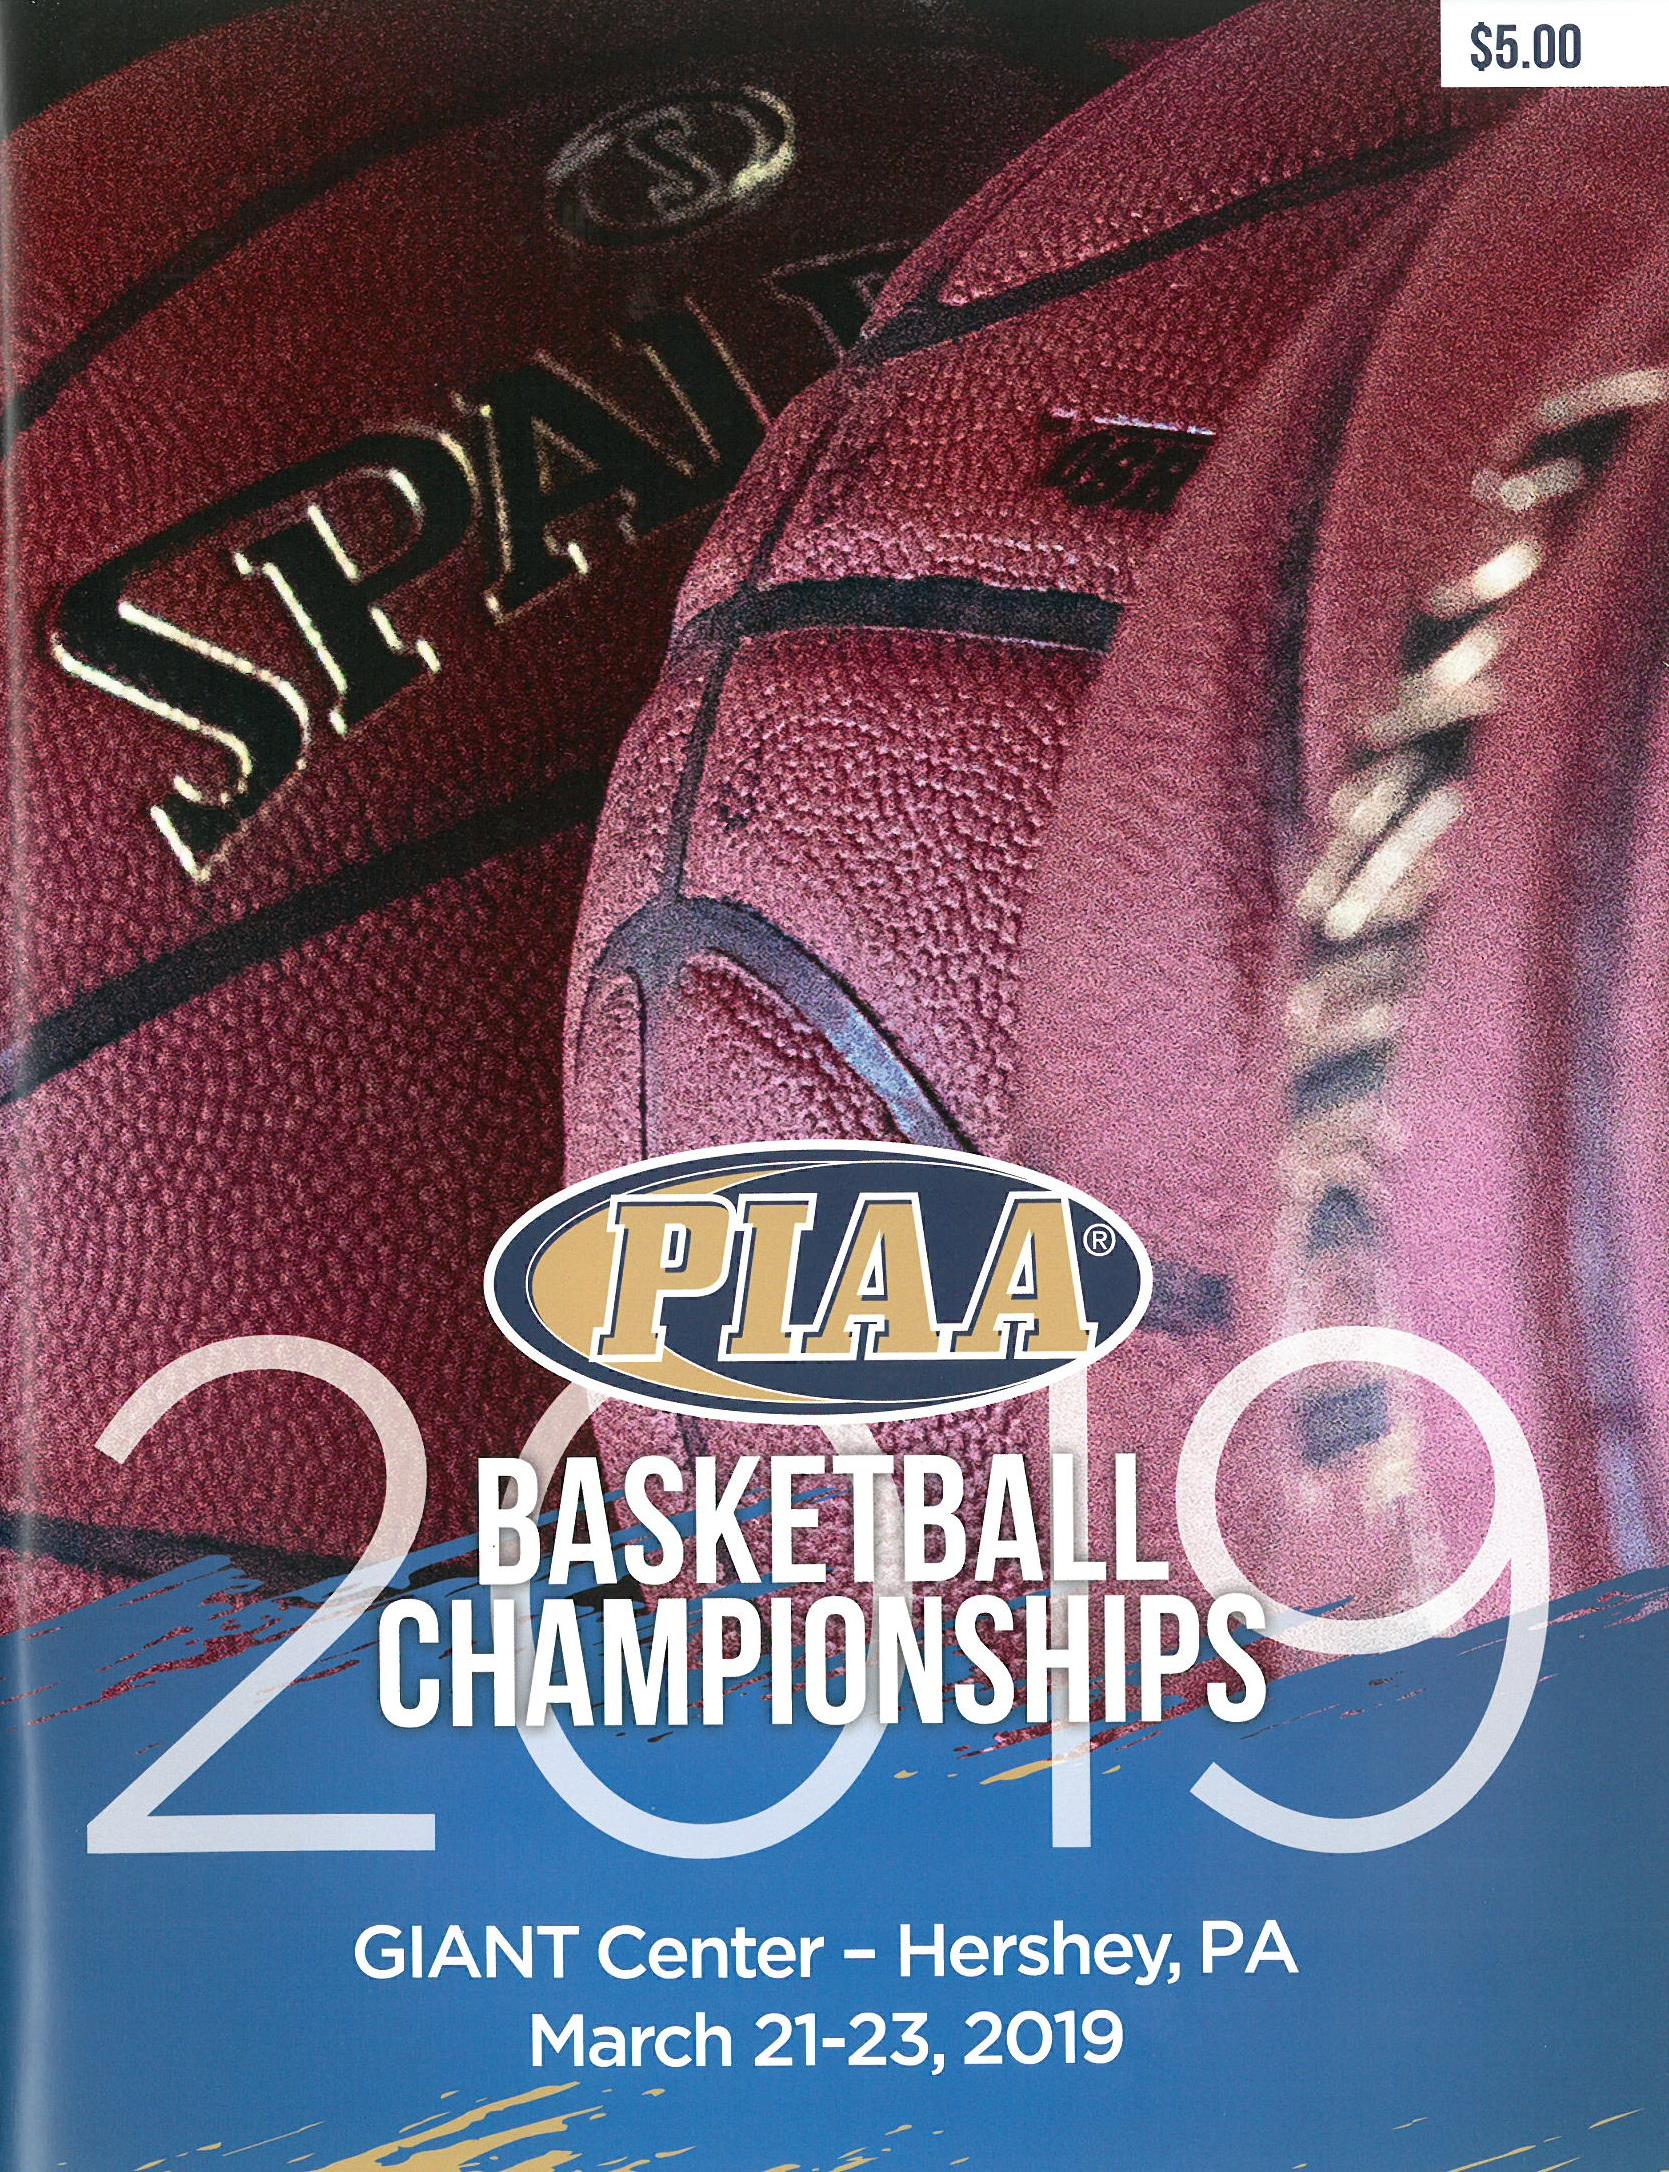 2018 Basketball Championship Program